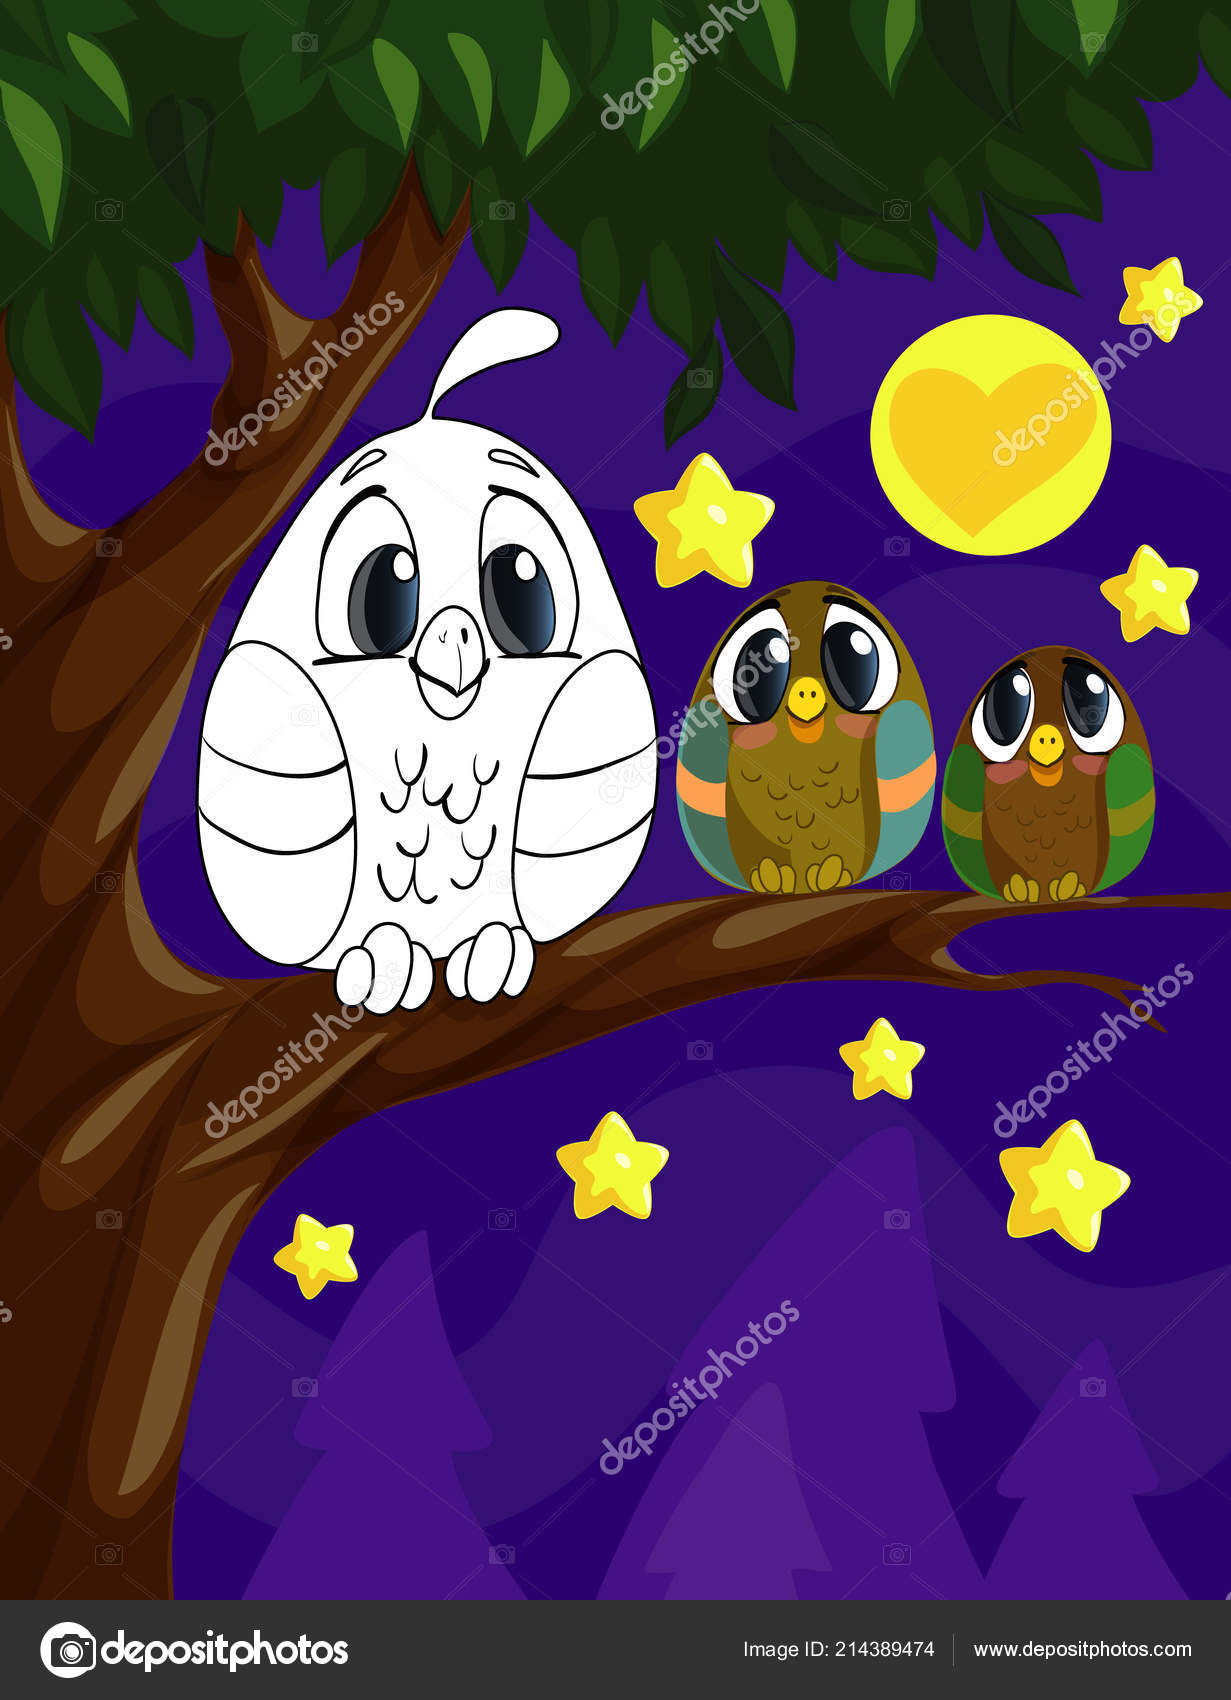 Coloring Book Page For Preschool Children With Colorful Background